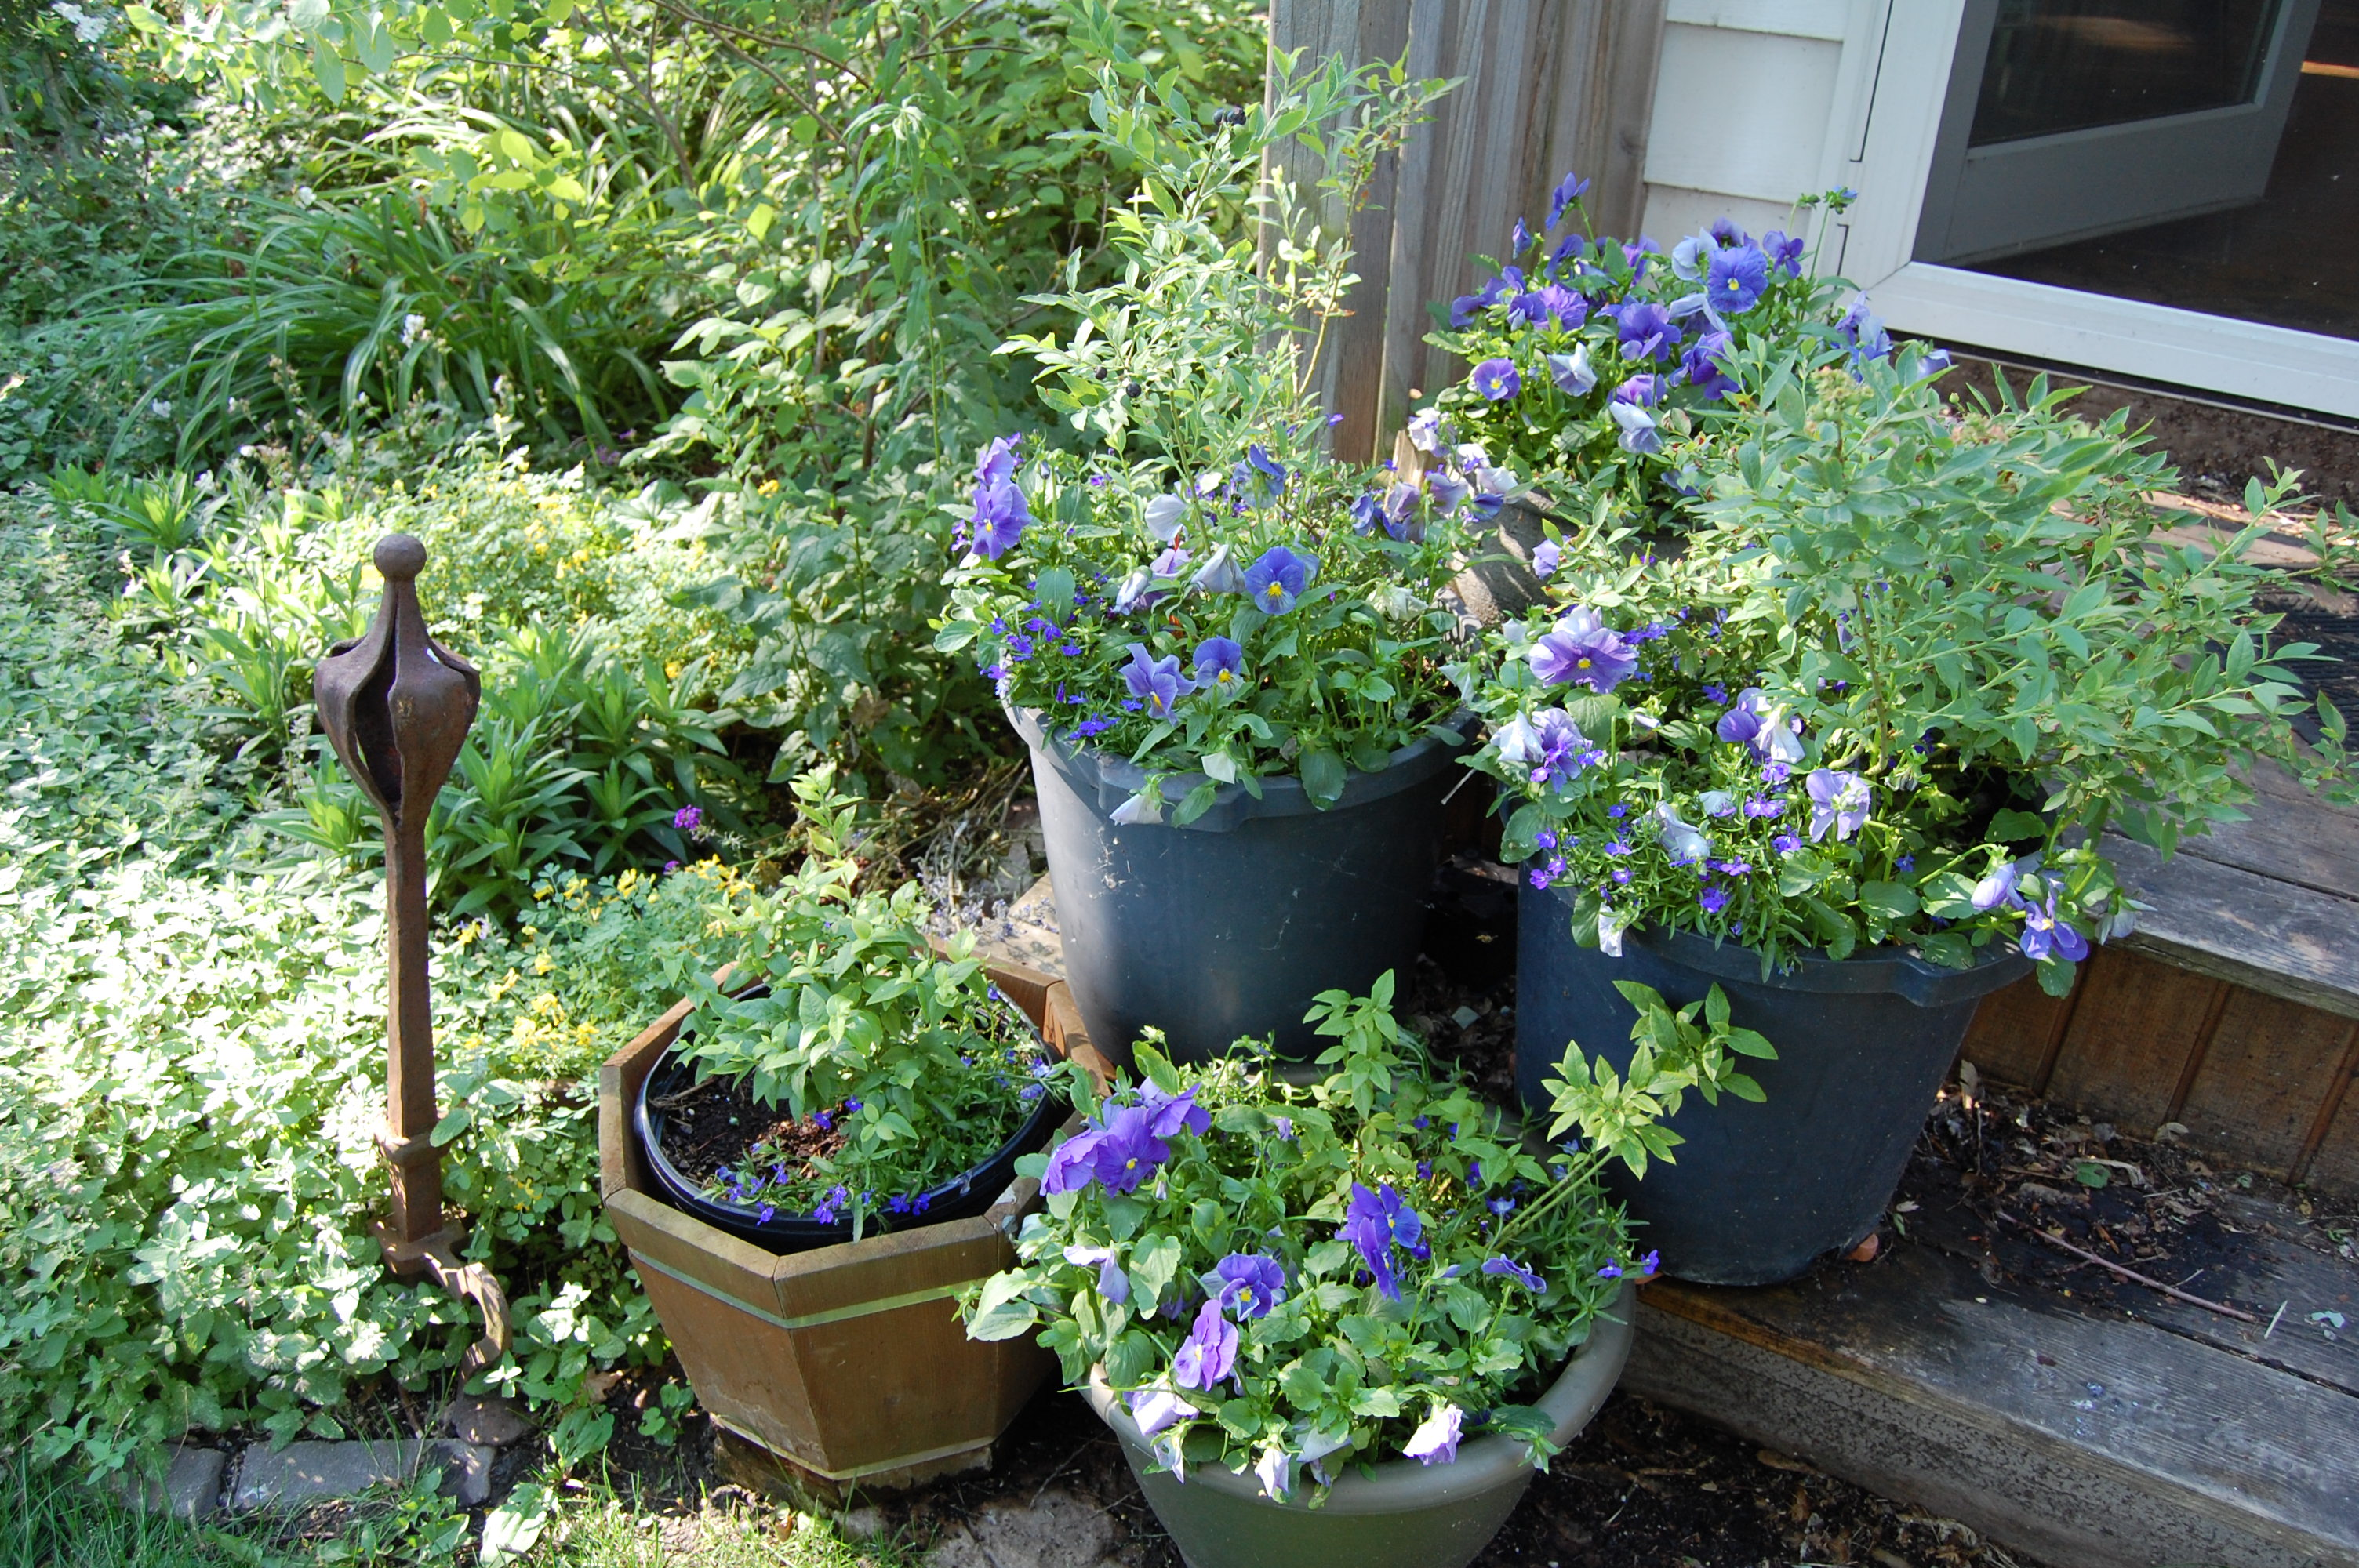 Pansies and low bush blueberries